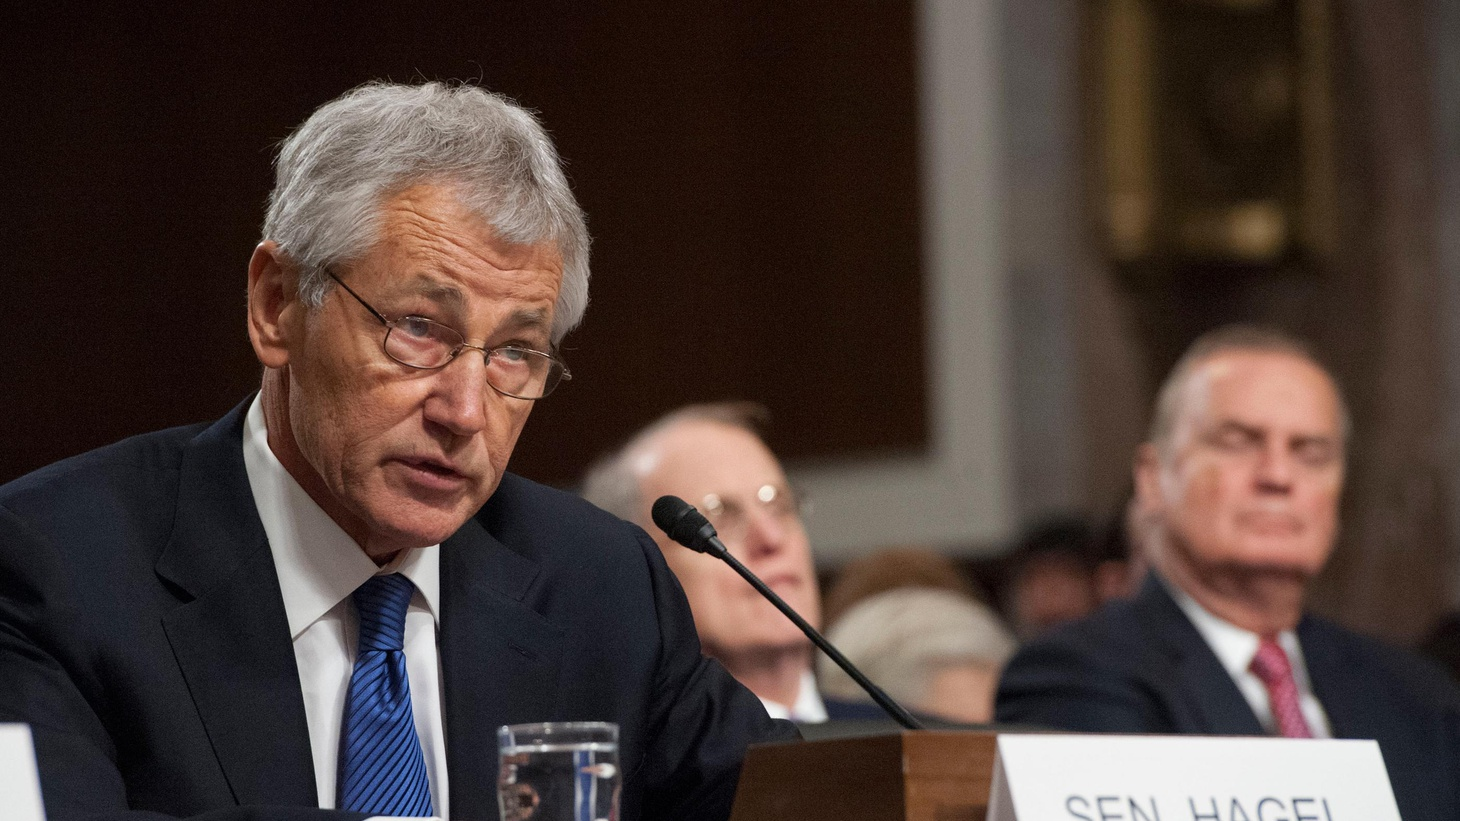 Chuck Hagel is President Obama's choice to be Secretary of Defense. At his Senate confirmation hearing today, he got a grilling — especially from former Republican colleagues.